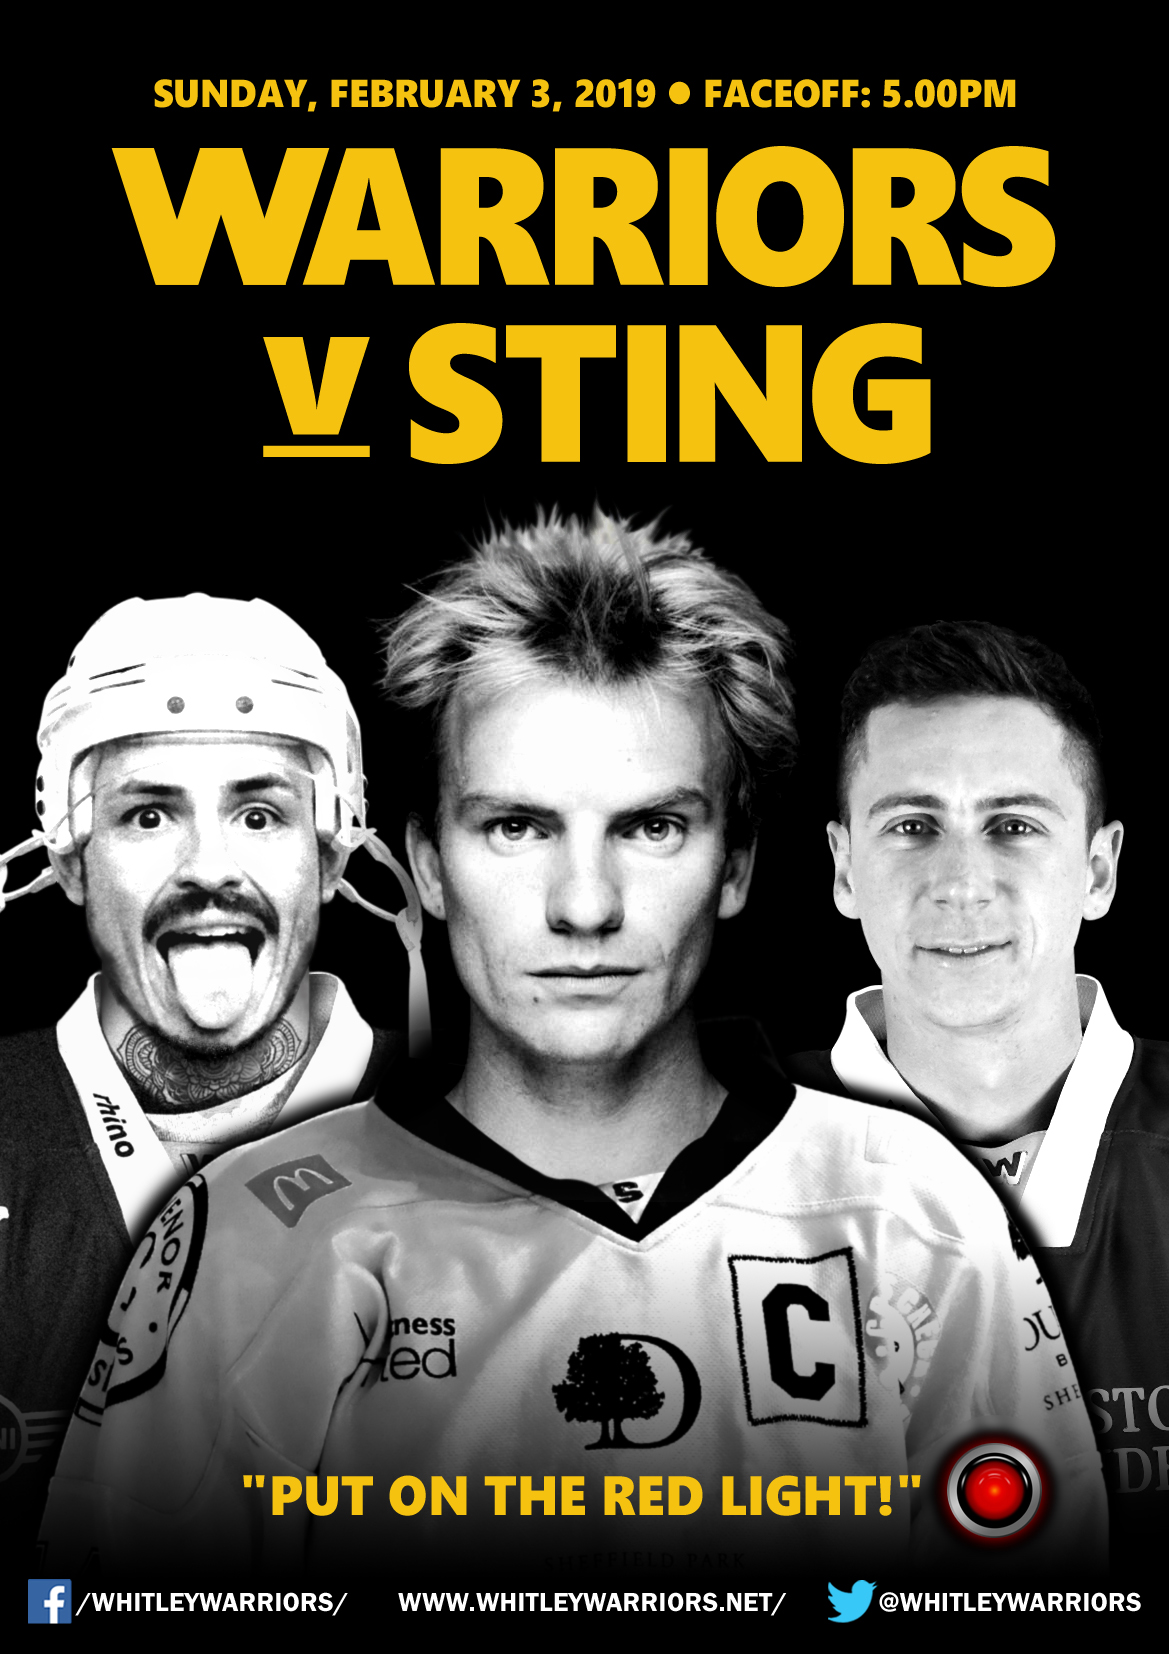 Whitley Warriors vs Sutton Sting @ Whitley Bay Ice Rink, Sunday 3 February, face off 5pm